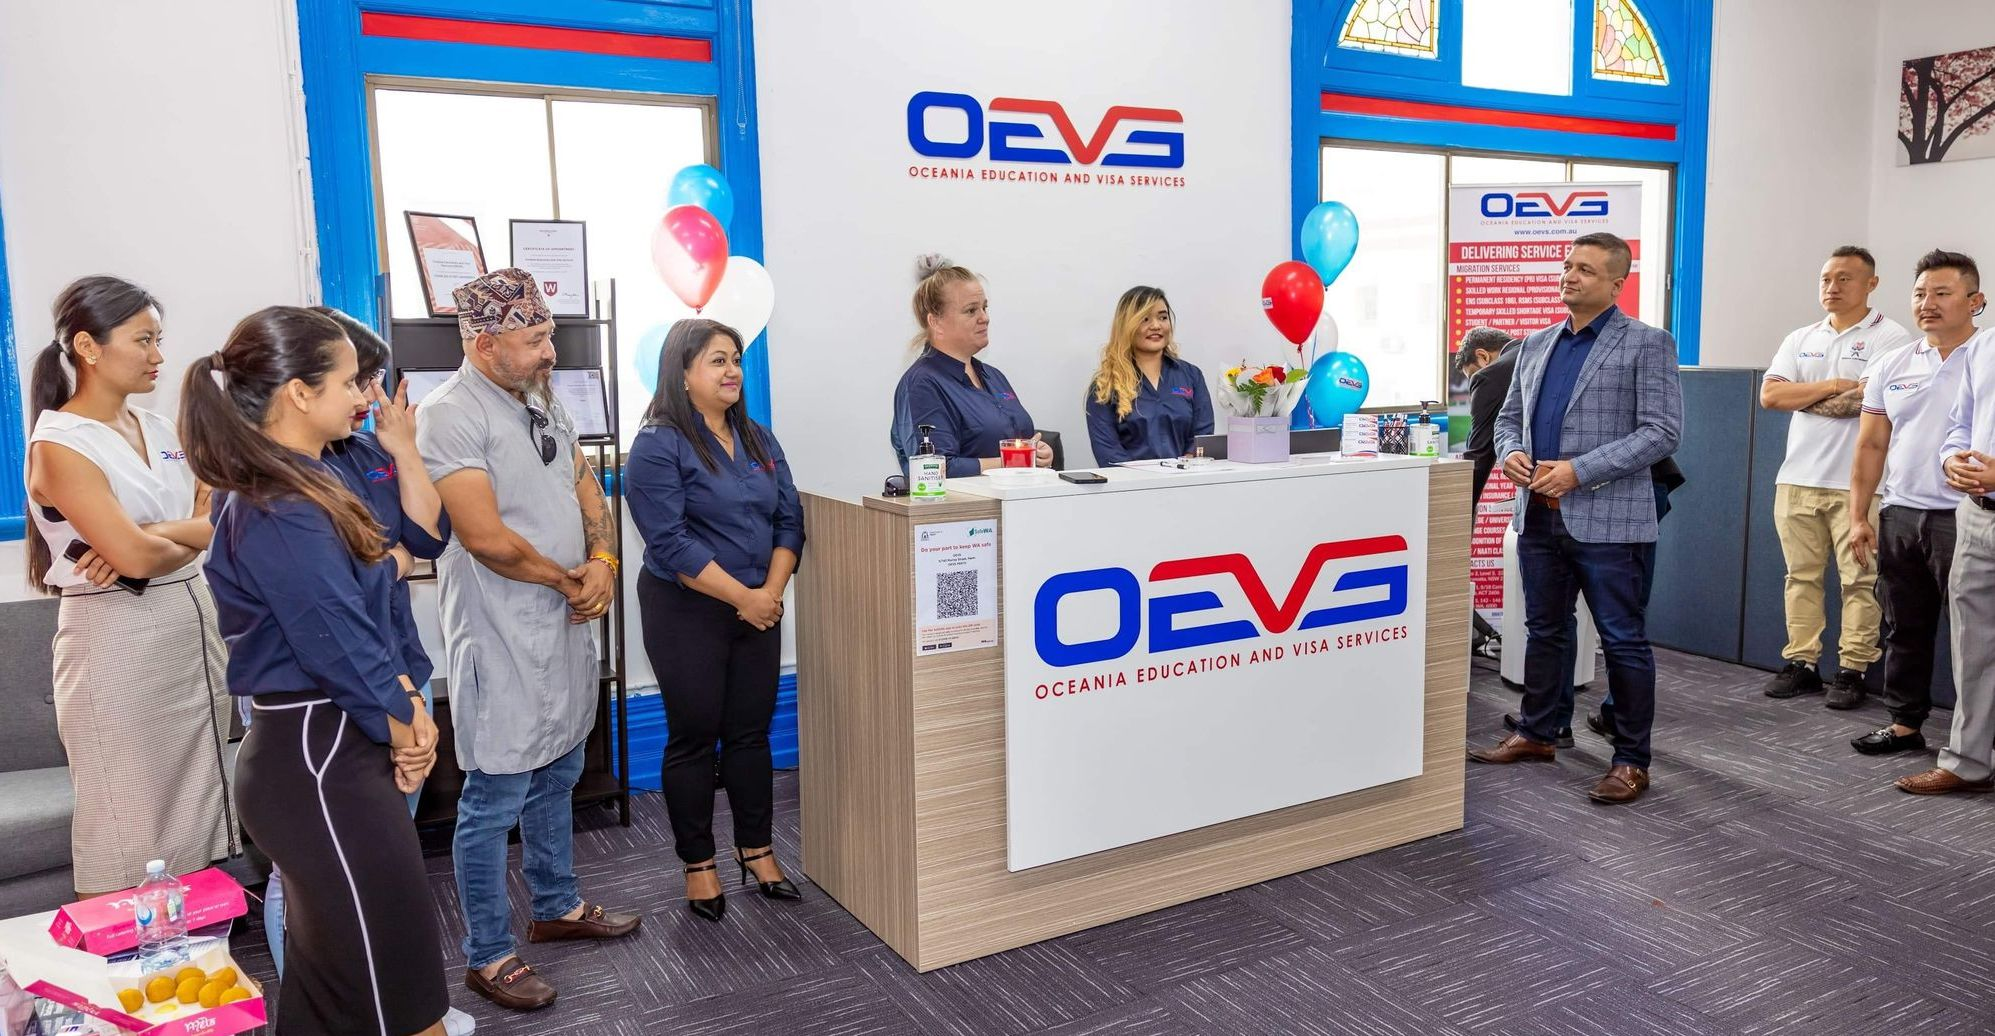 Oceania Education and Visa Services-OEVS